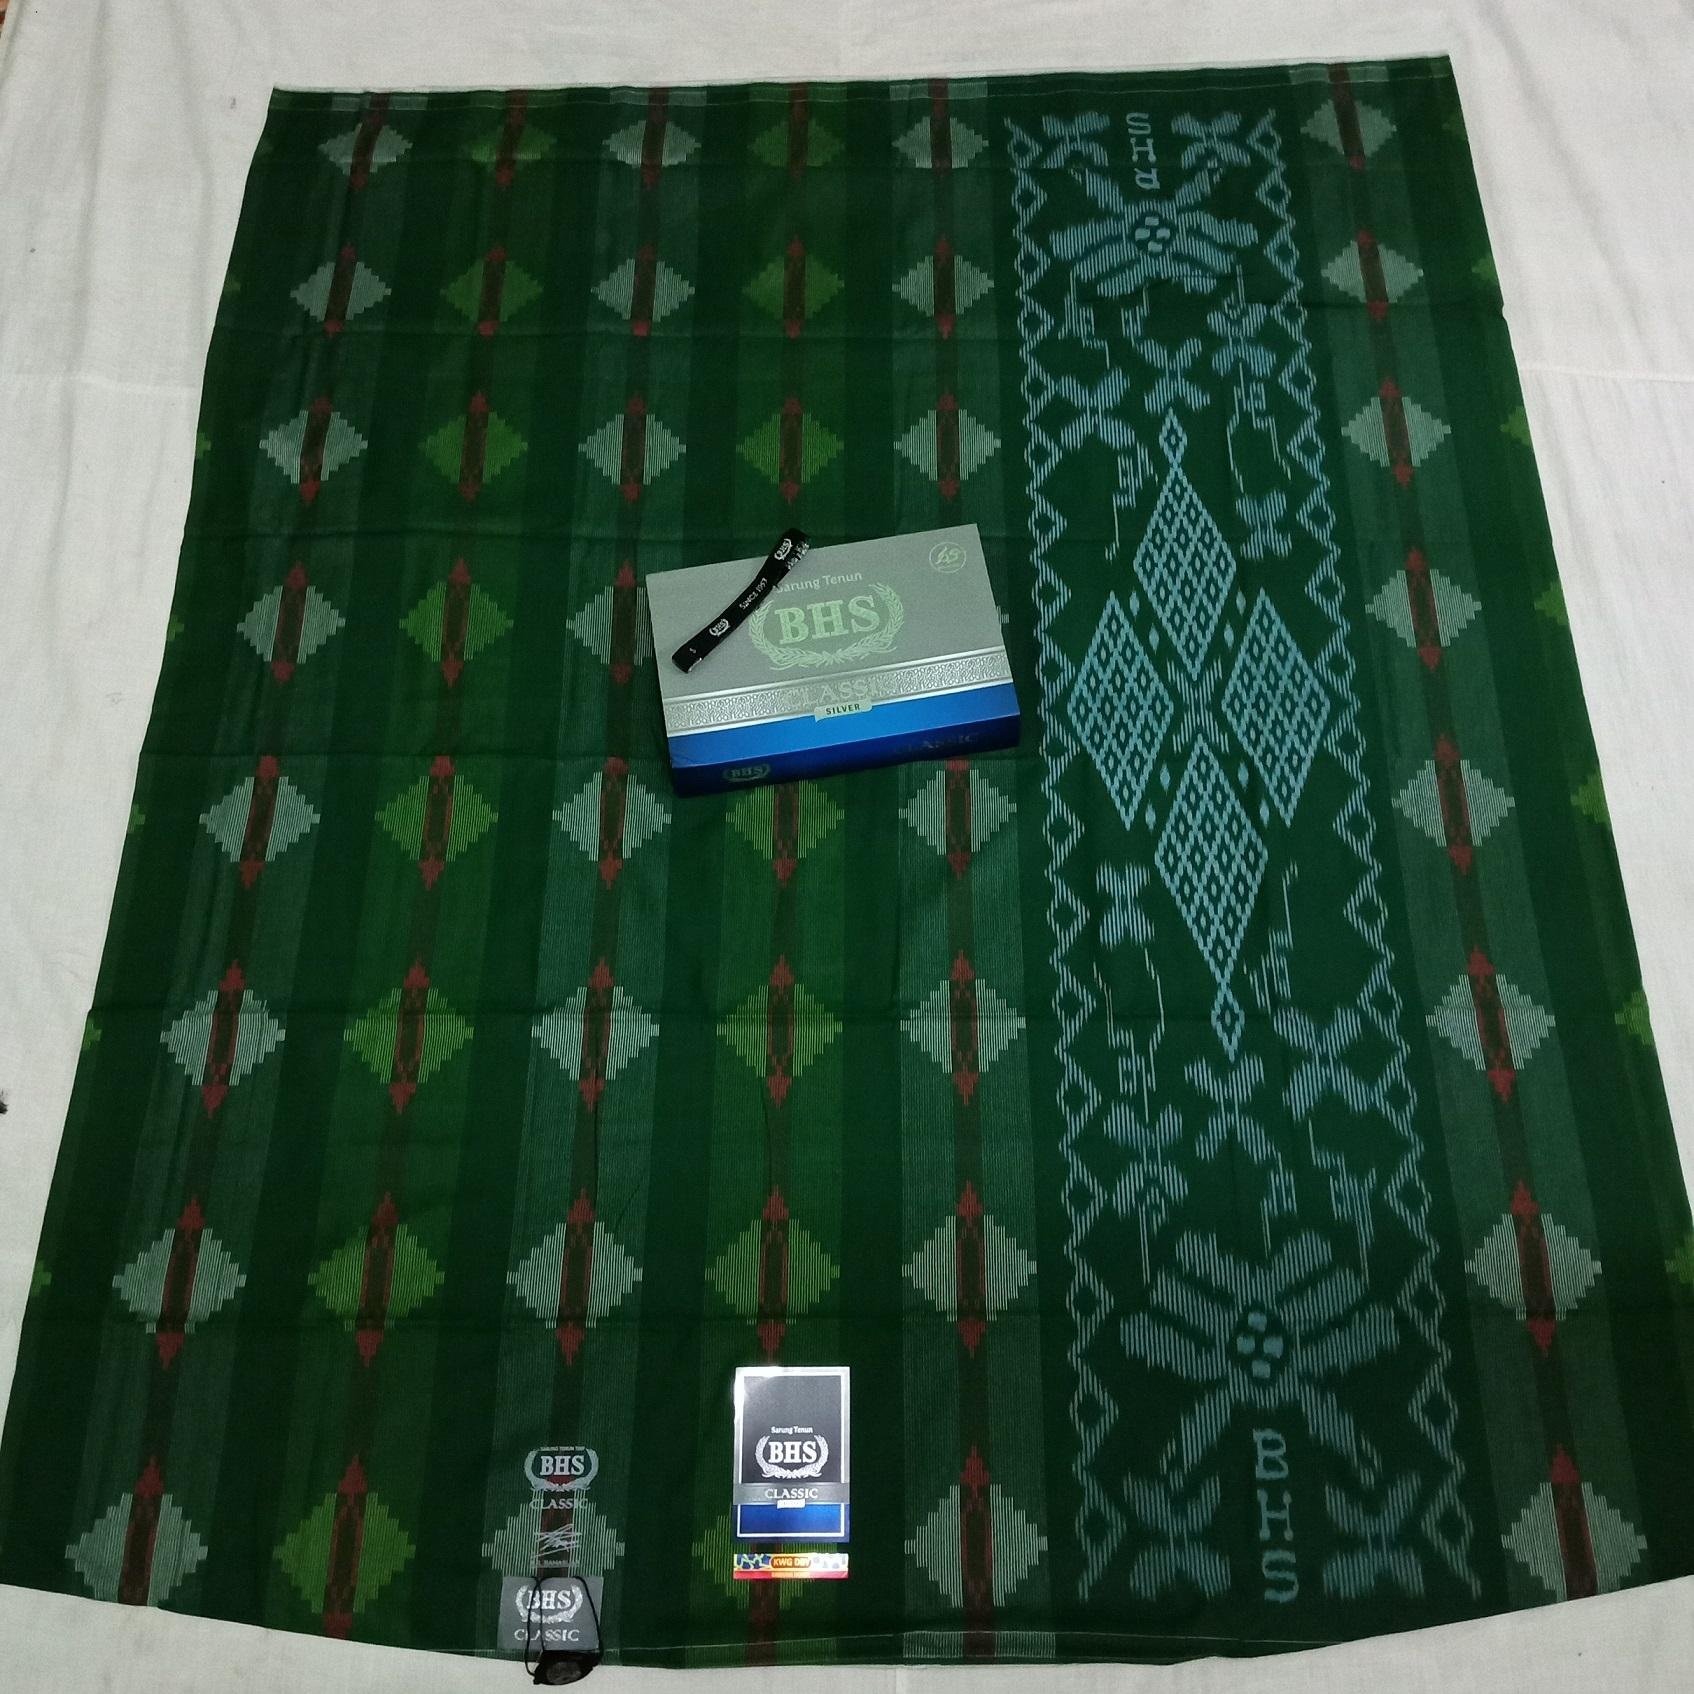 COD SARUNG BHS CLASIC KWG // SARUNG BHS  CLASIC SONGKET KAWUNG